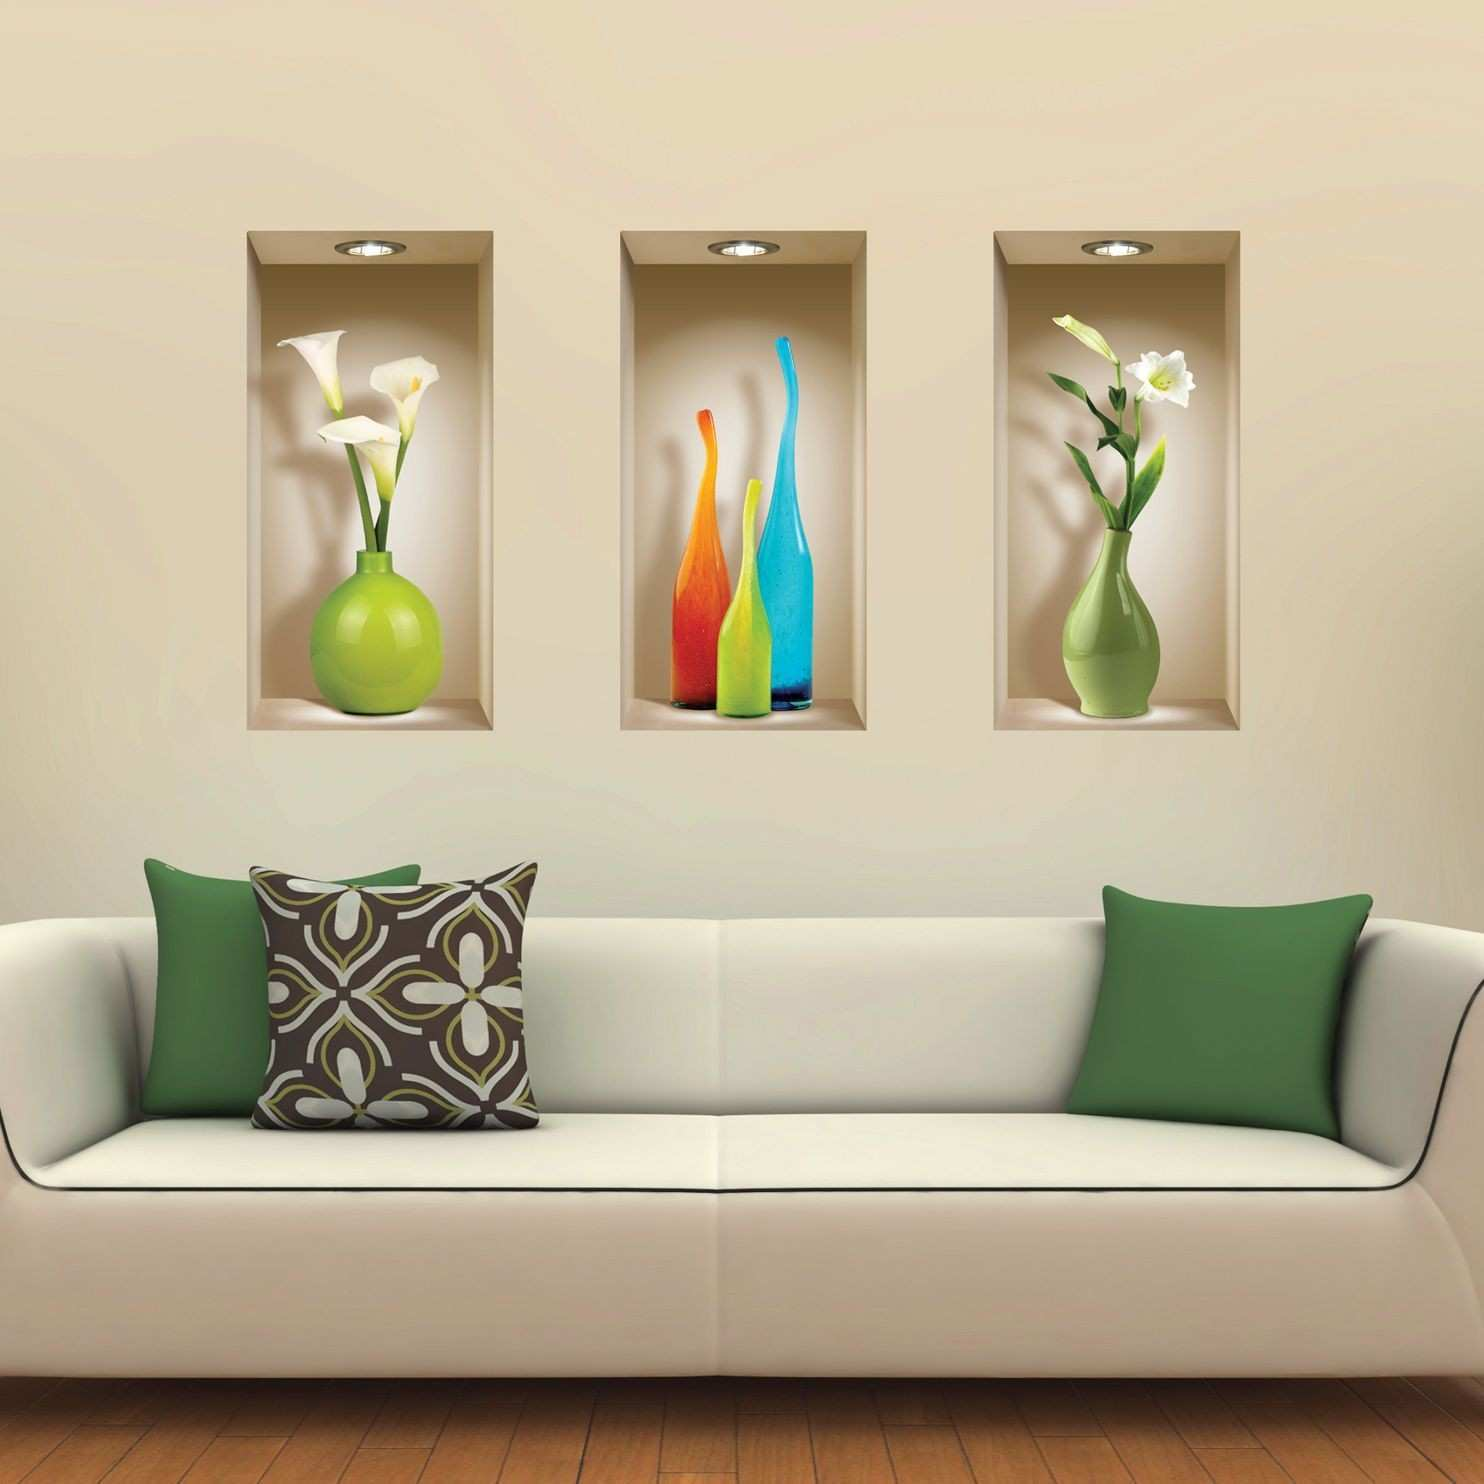 Set 3 Art Wall Sticker 3D Decals Picture Removable Home Decor Vinyl